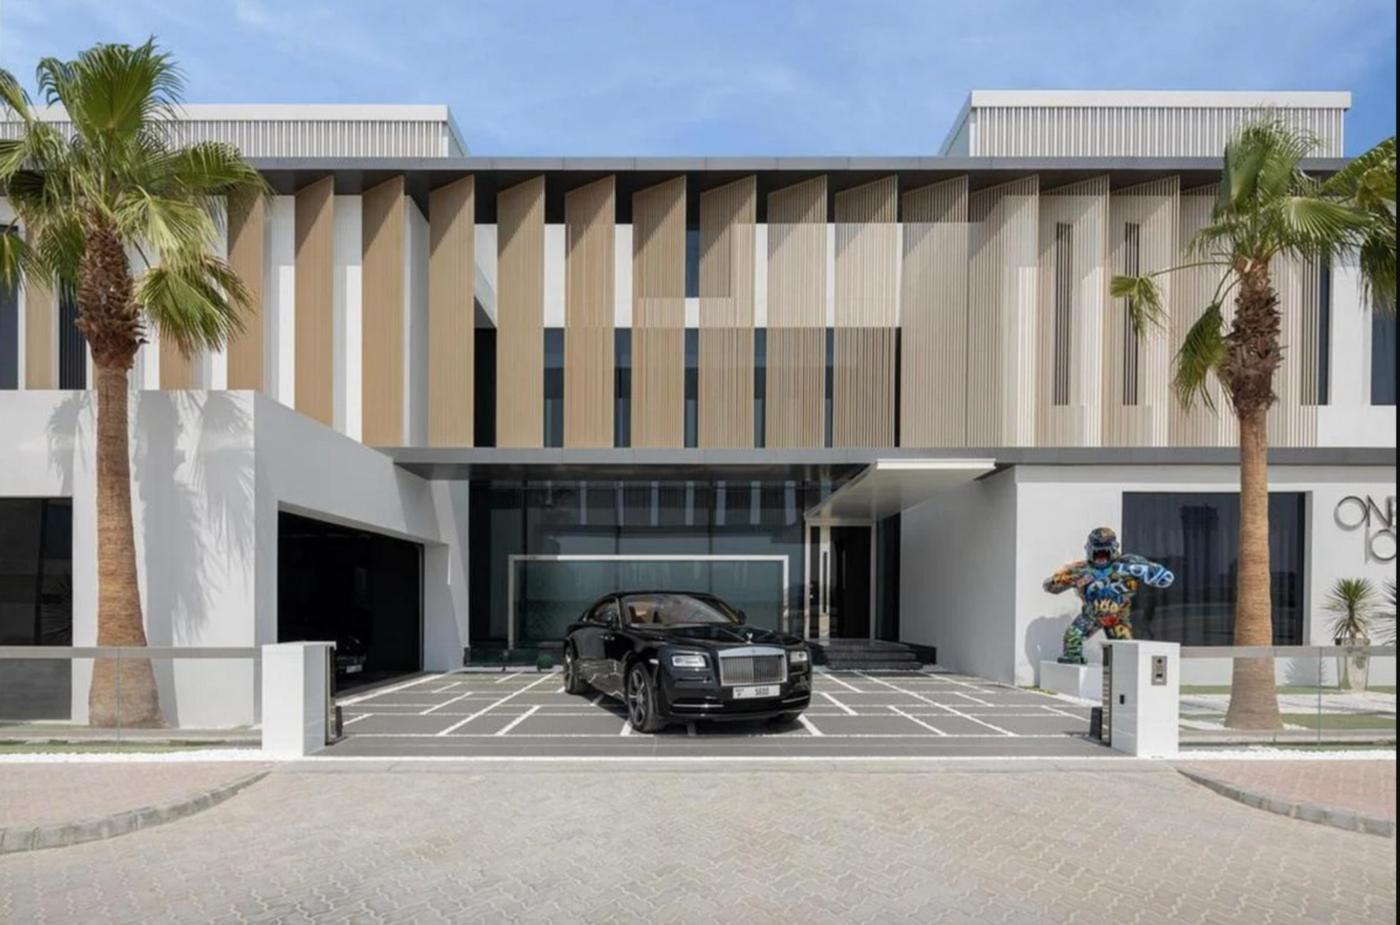 A cubist-inspired modern mansion with white walls, large square windows and large louvred panelling on the top floor. In the driveway sits a black Rolls Royce. To the right of the Rolls, there's a graffitied statue of a gorilla standing on a plinth. Blue skies and tall palm trees indicate that this house is somewhere hot.